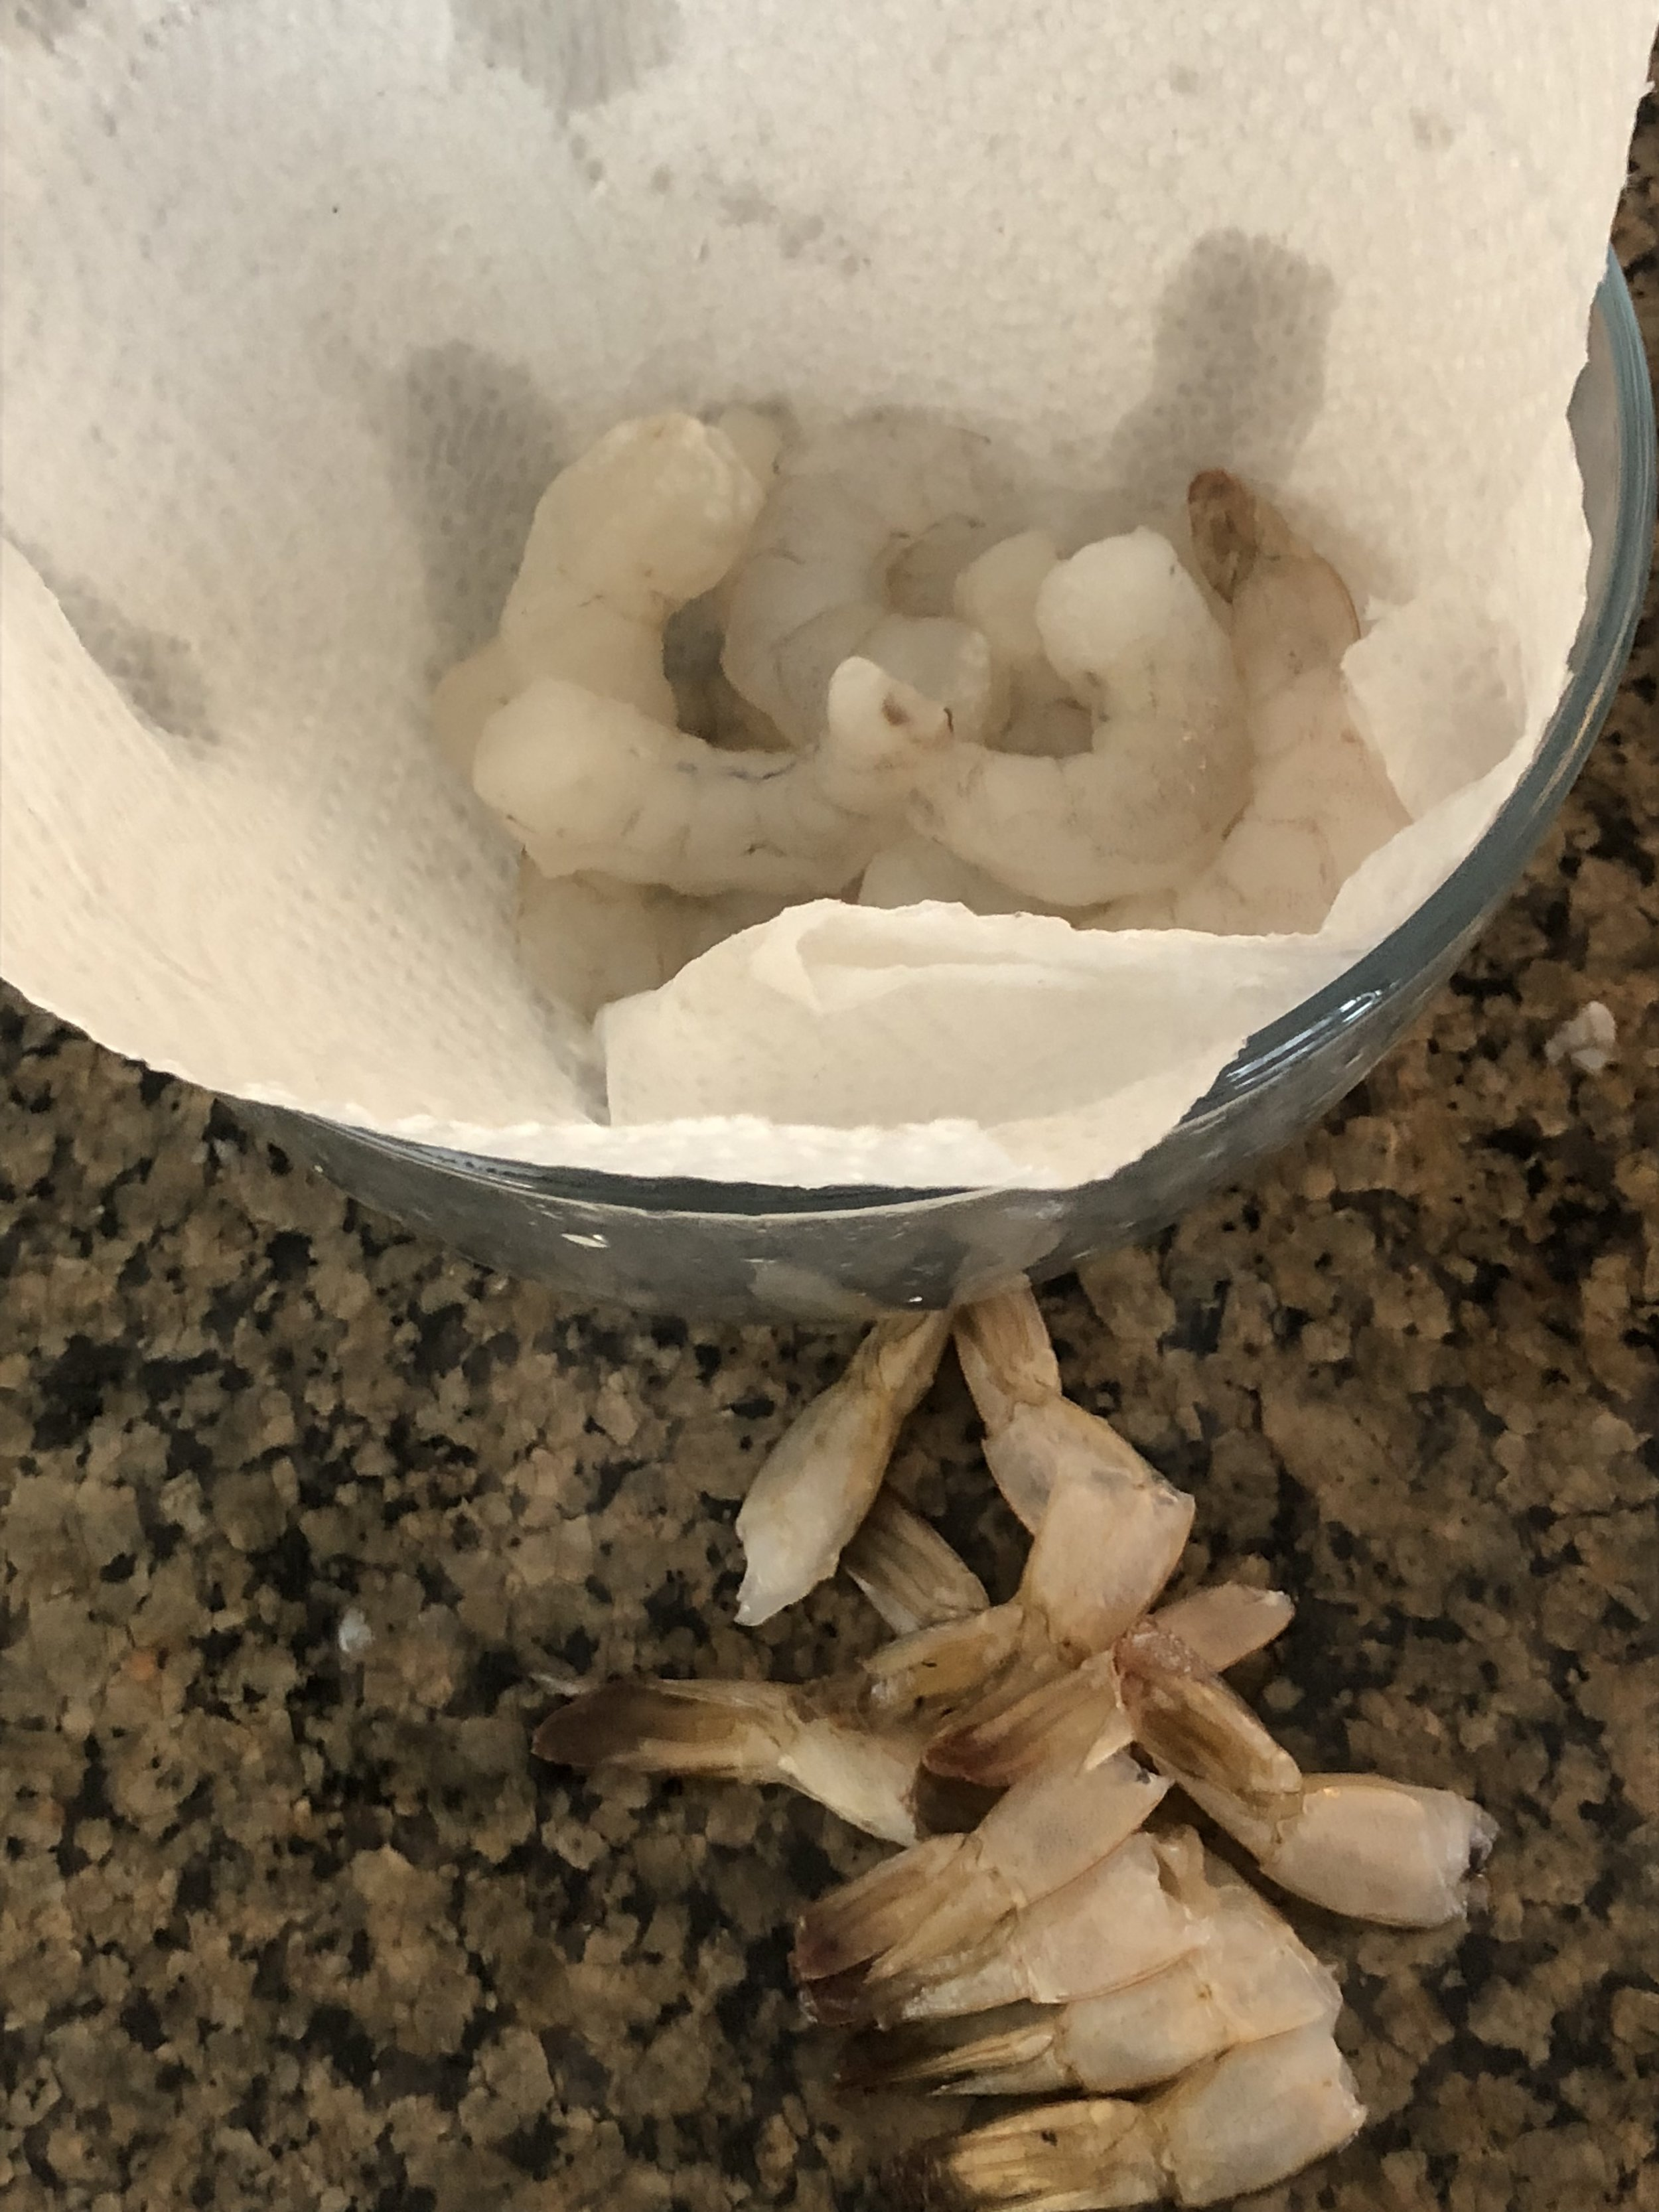 Defrost (if necessary), clean and detail/devein the shrimp. Rinse under cold water. Draping a paper towel over the bowl to catch the excess water, helps keep the shrimp crisp.